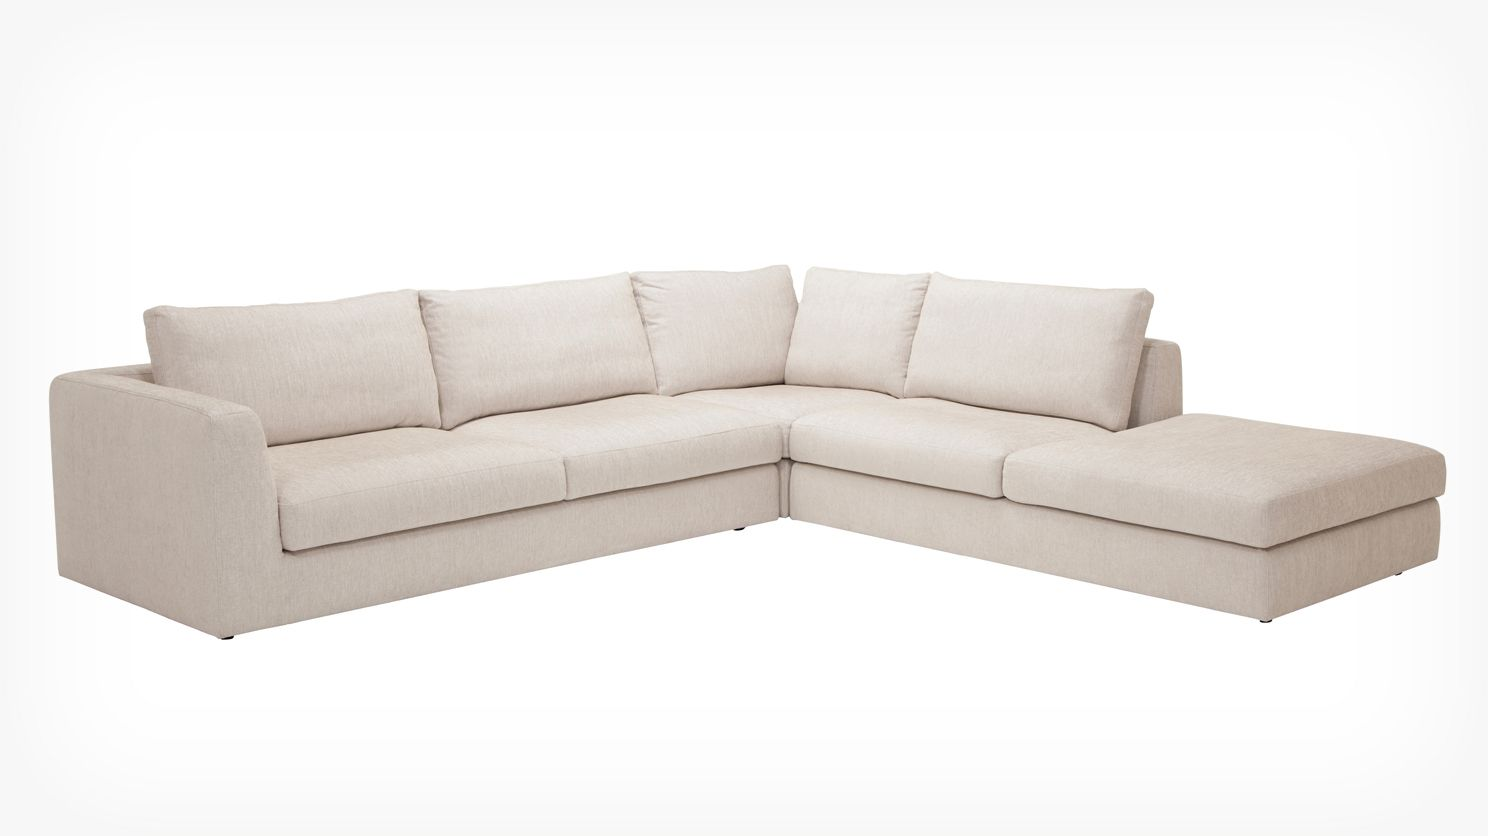 Best Cello 3 Piece Sectional Sofa With Backless Chaise 3 400 x 300